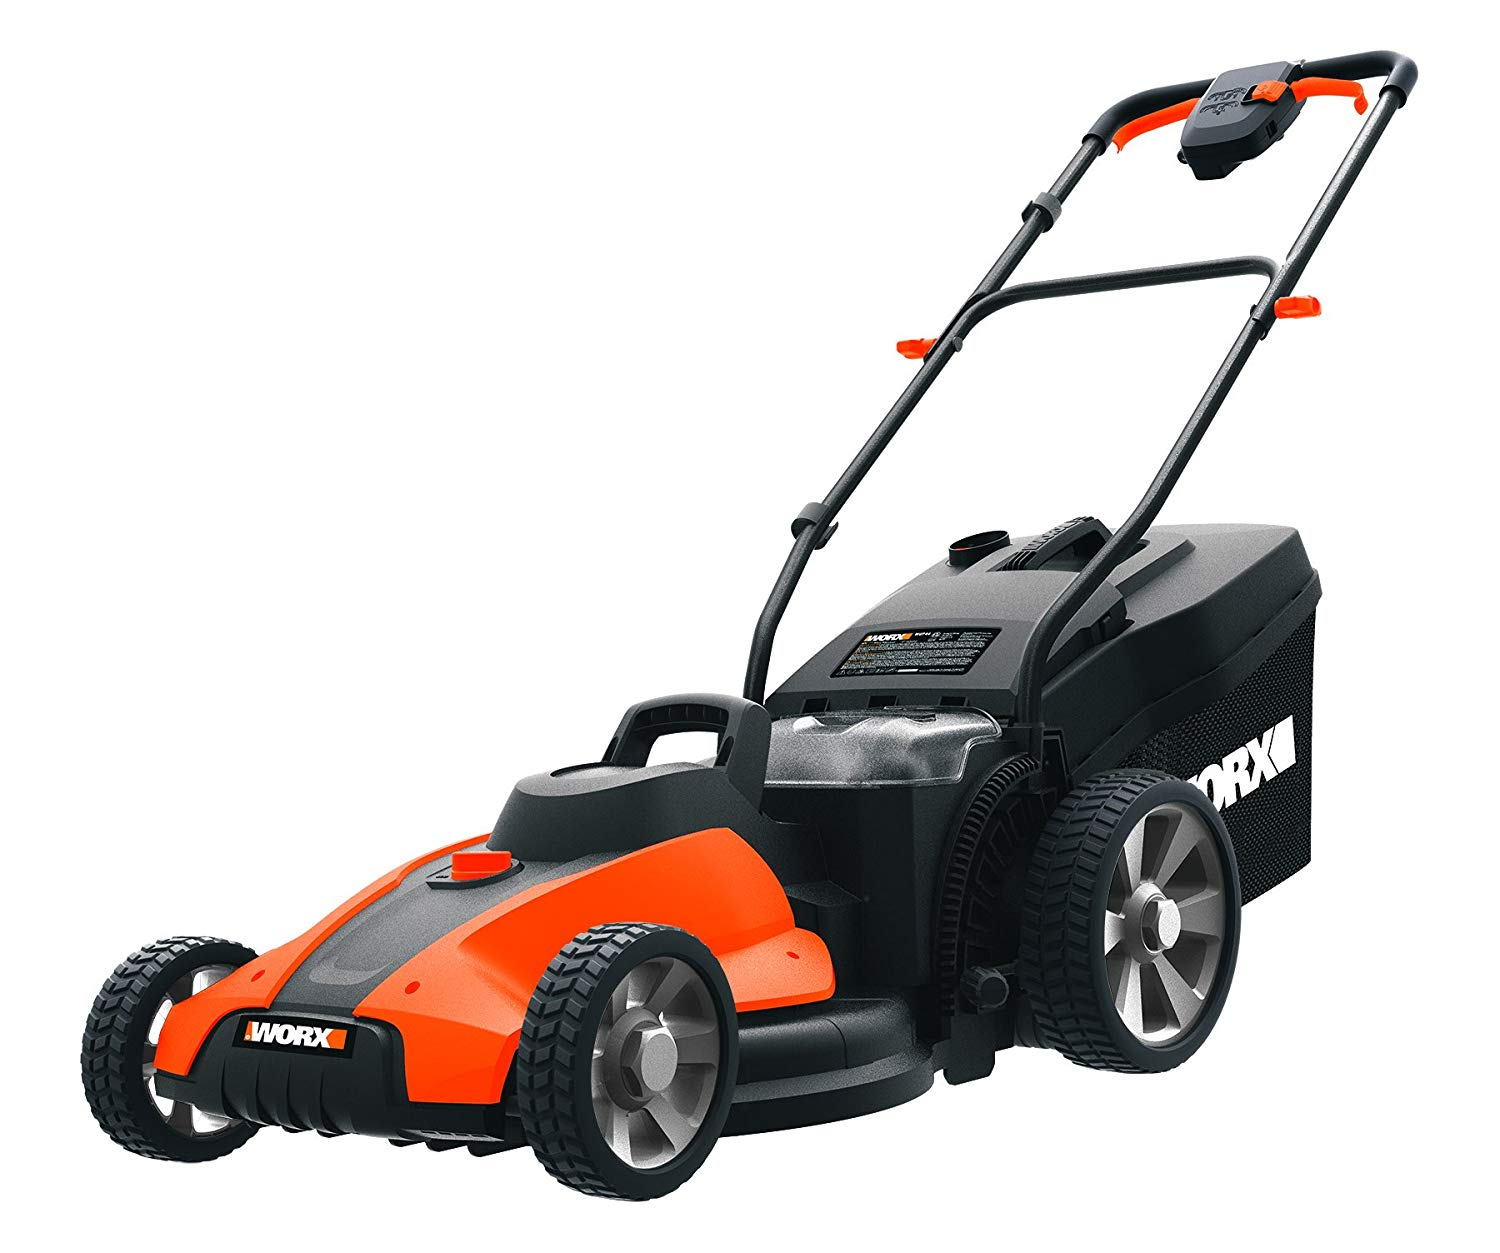 What is a lawn mower?